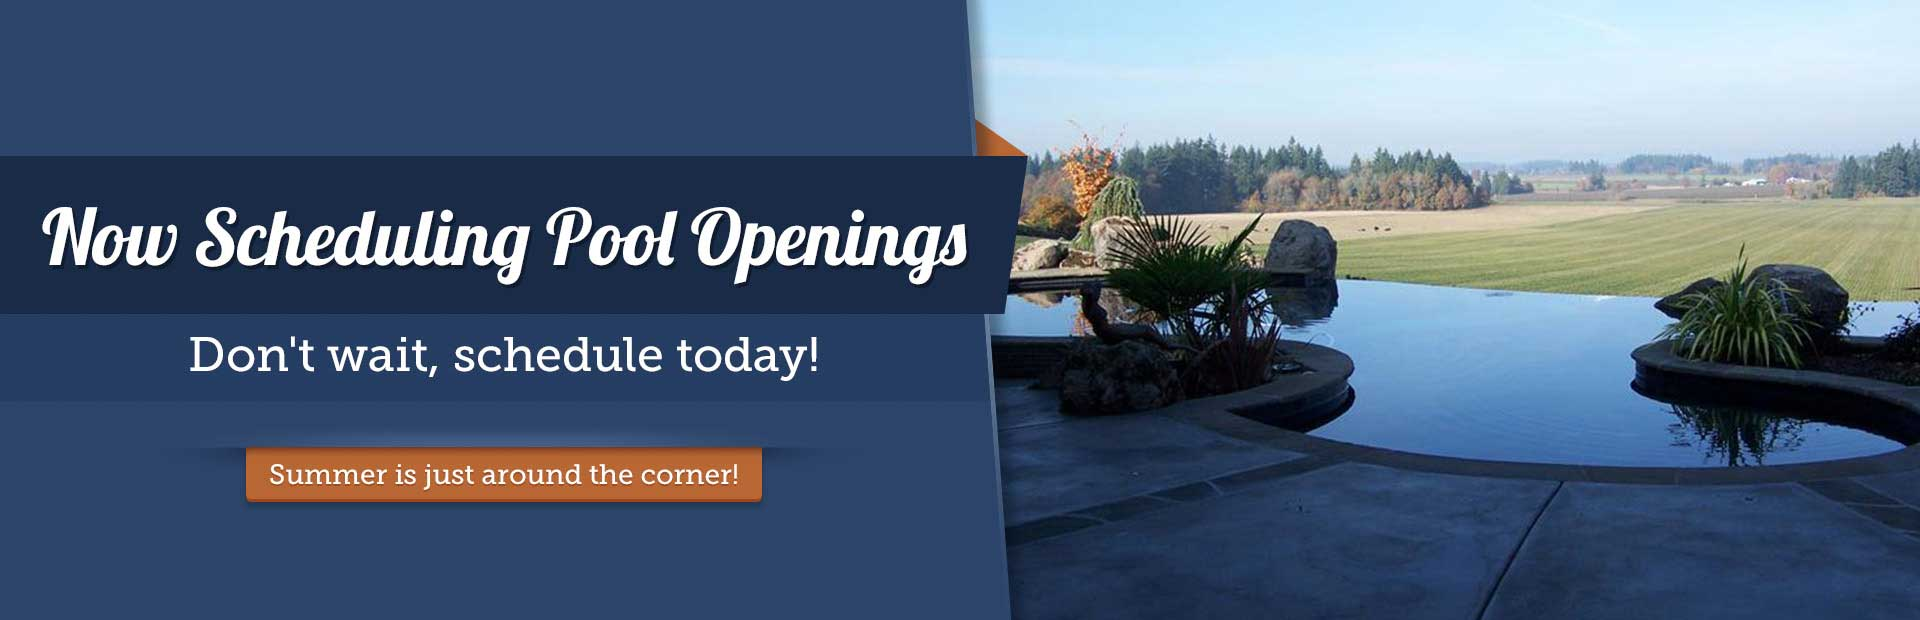 Now Scheduling Pool Openings: Summer is just around the corner!